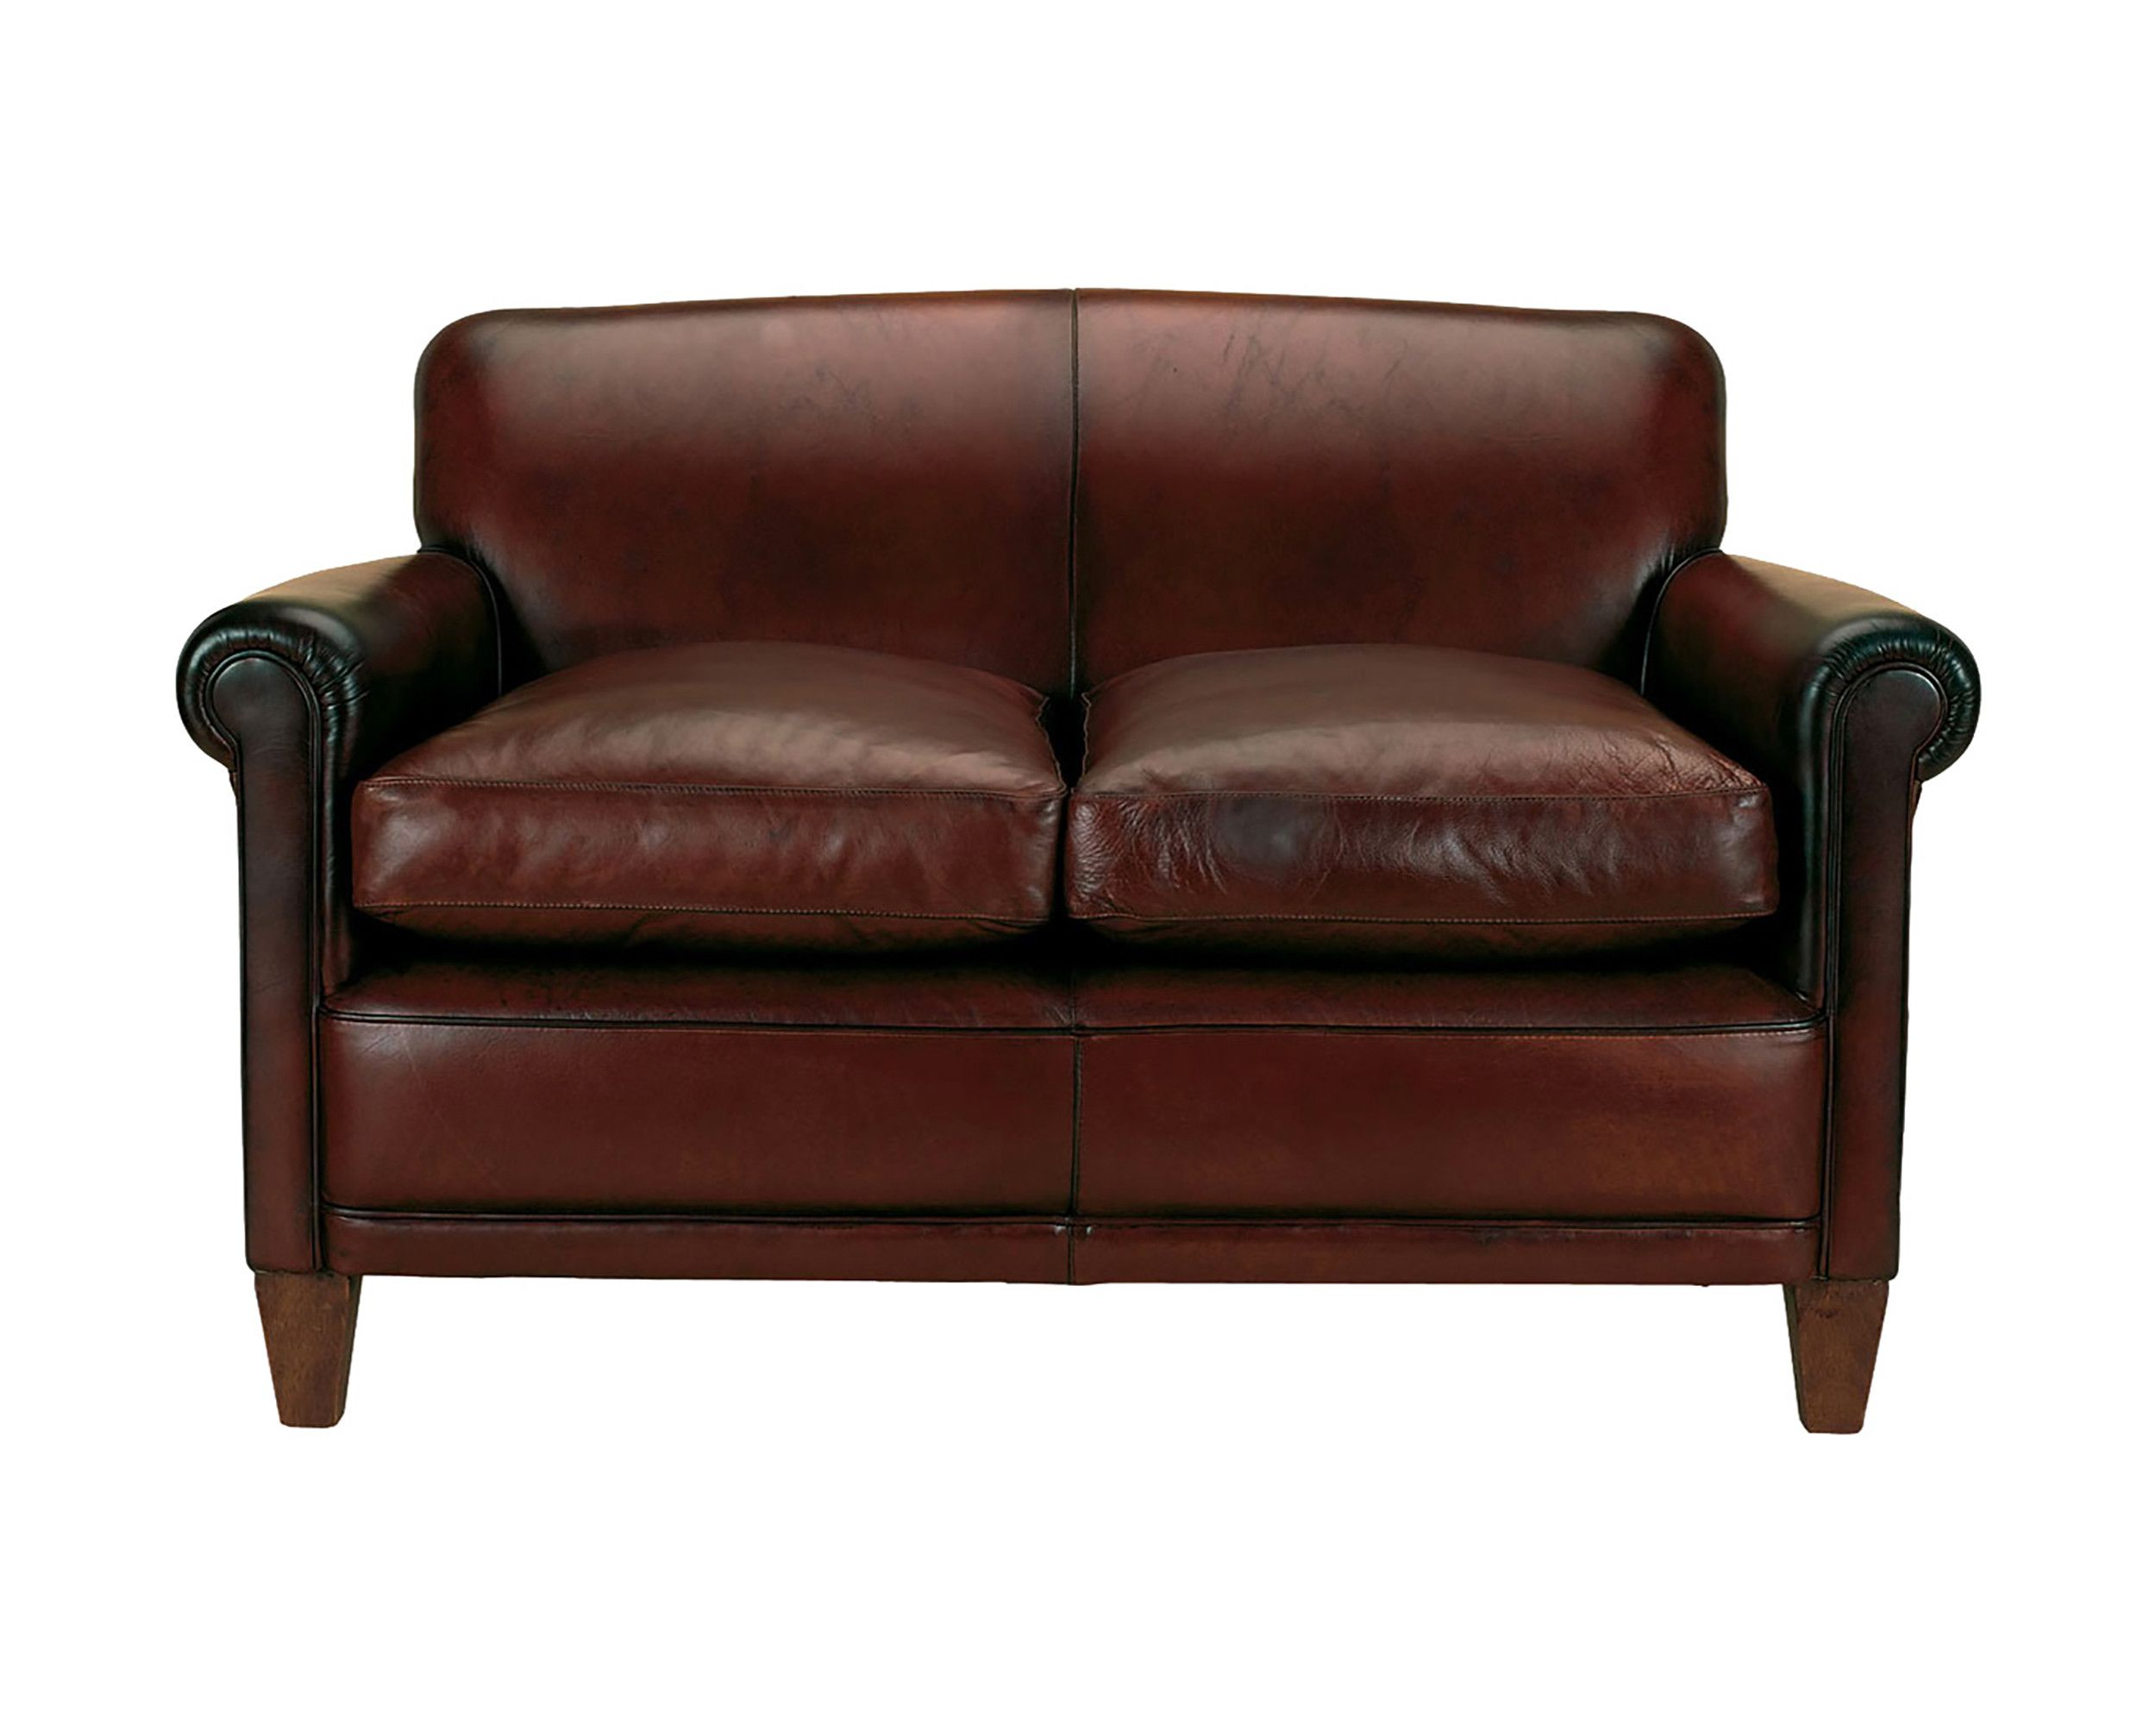 Made To Order Sofas Burlington Leather Large 2 Seater Sofa In Heritage Laura